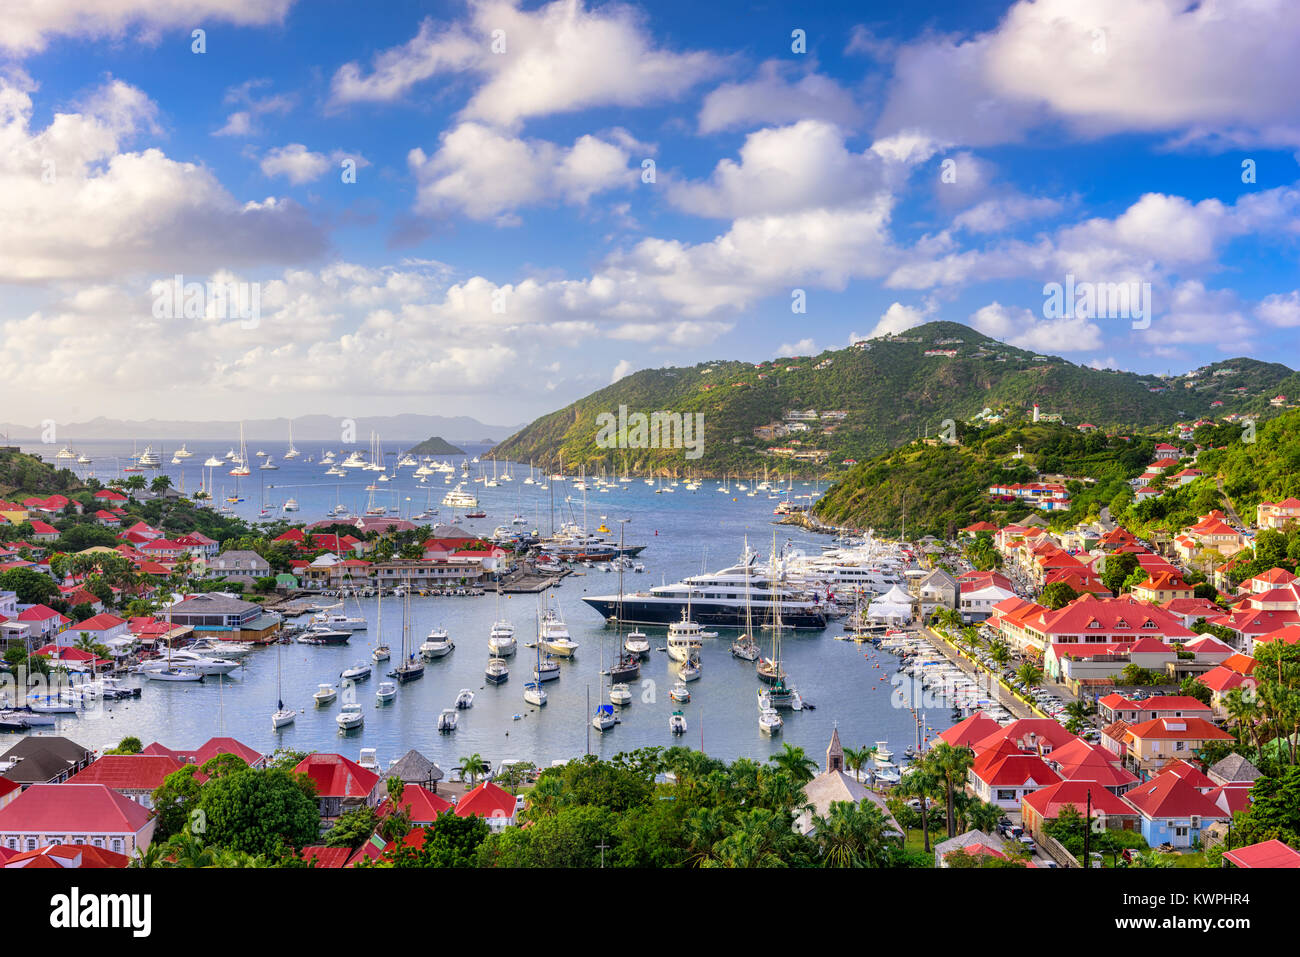 Saint Barthelemy skyline and harbor in the West Indies of the Caribbean. Stock Photo